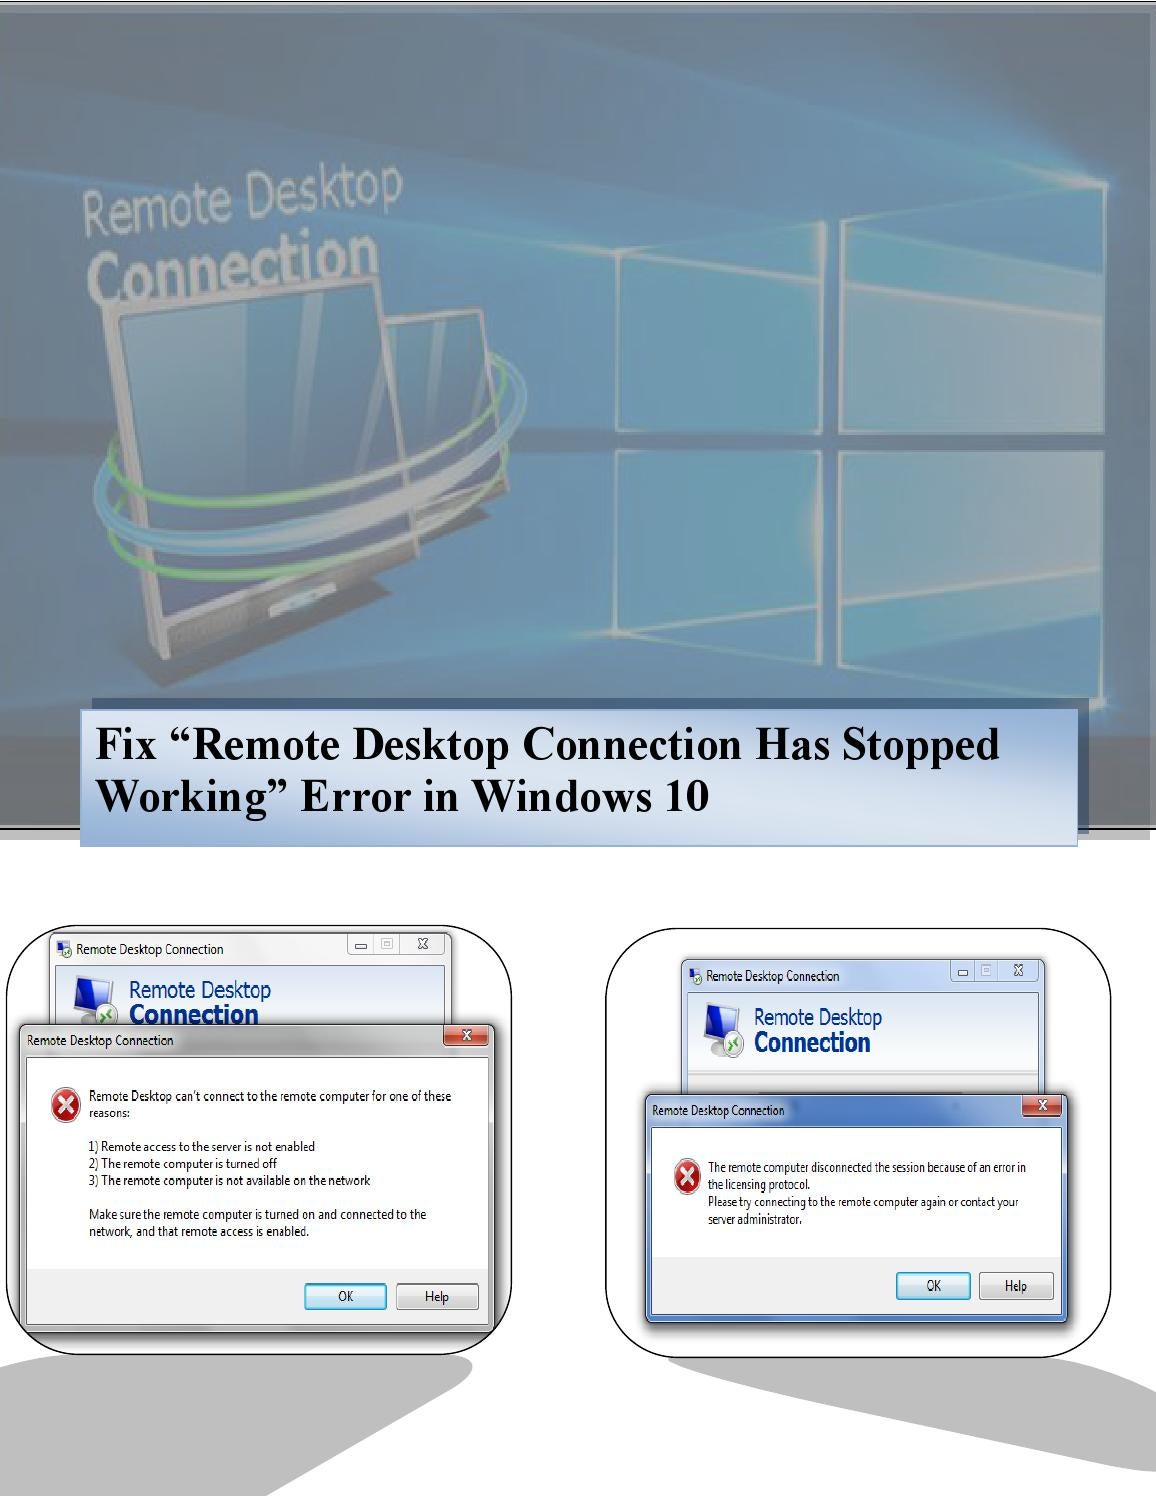 Fix remote desktop connection has stopped working in windows